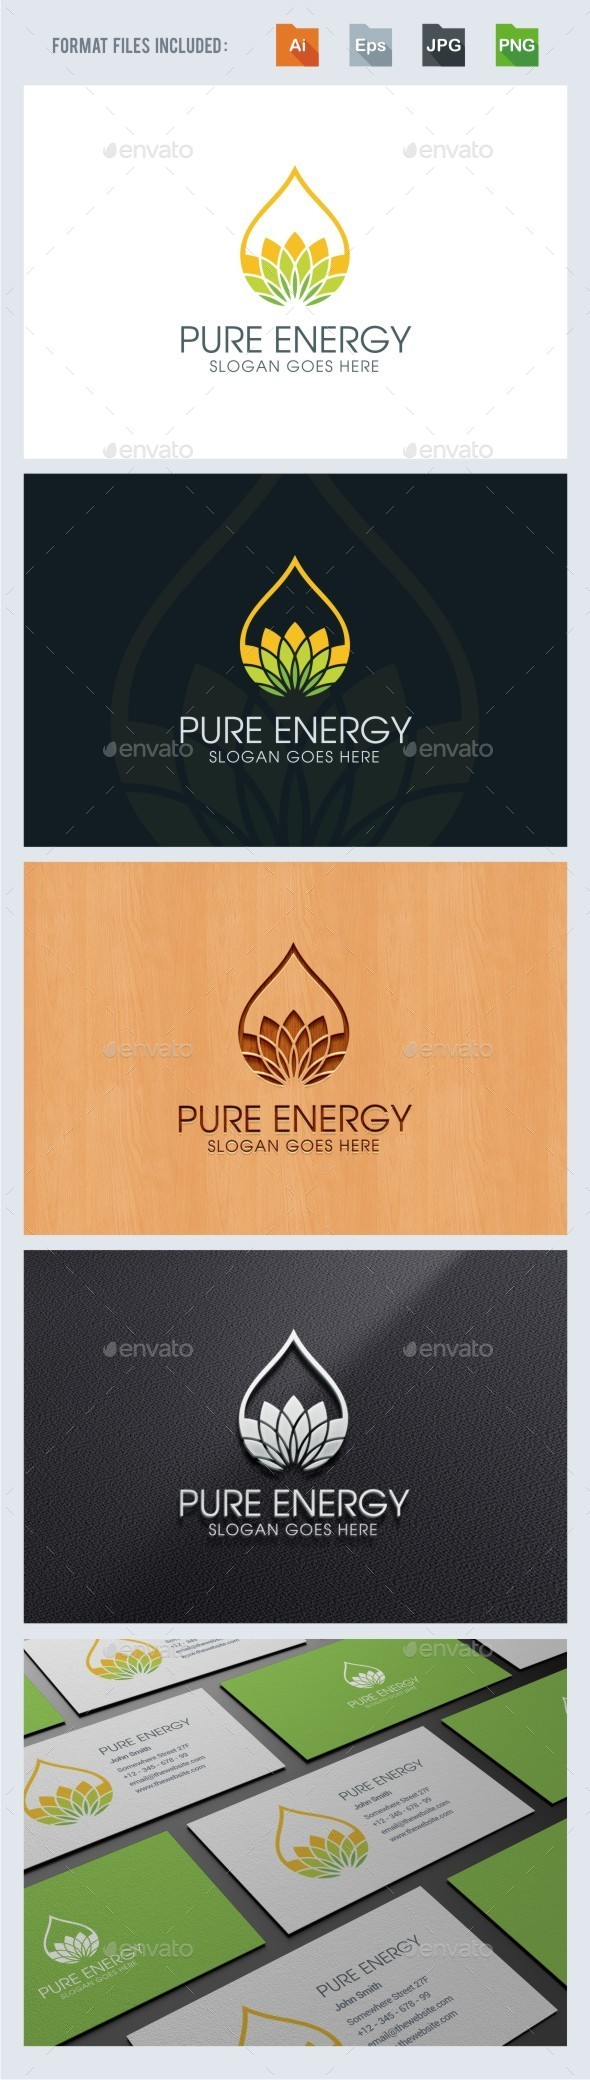 Pure - Eco Energy Logo Template - Nature Logo Templates